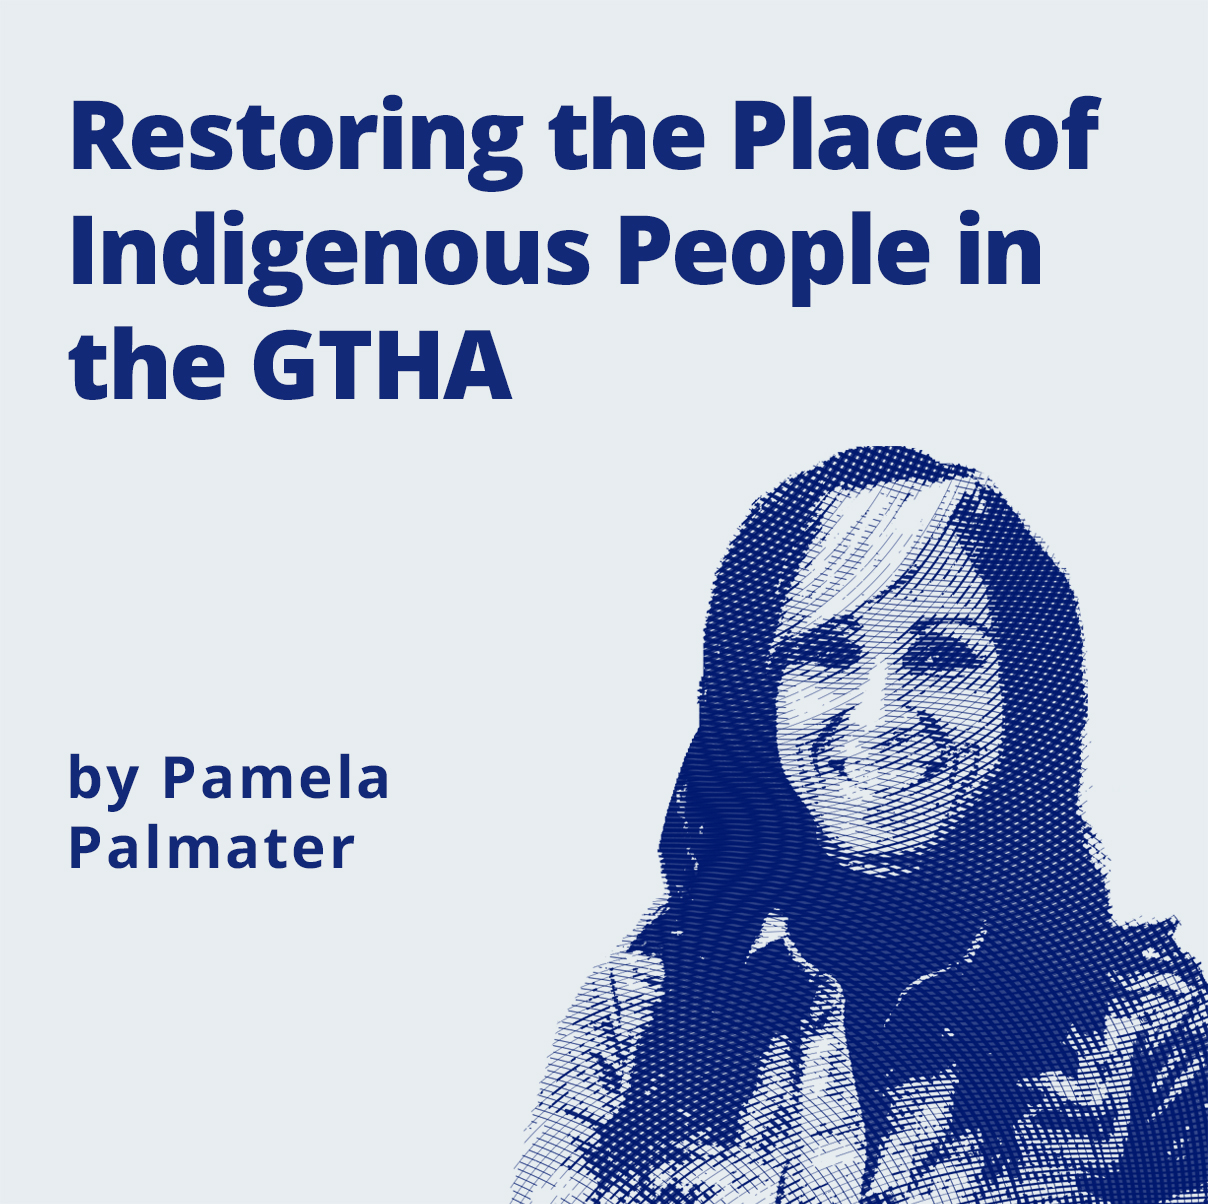 Restoring the Place of Indigenous People in the GTHA by Pamela Palmater